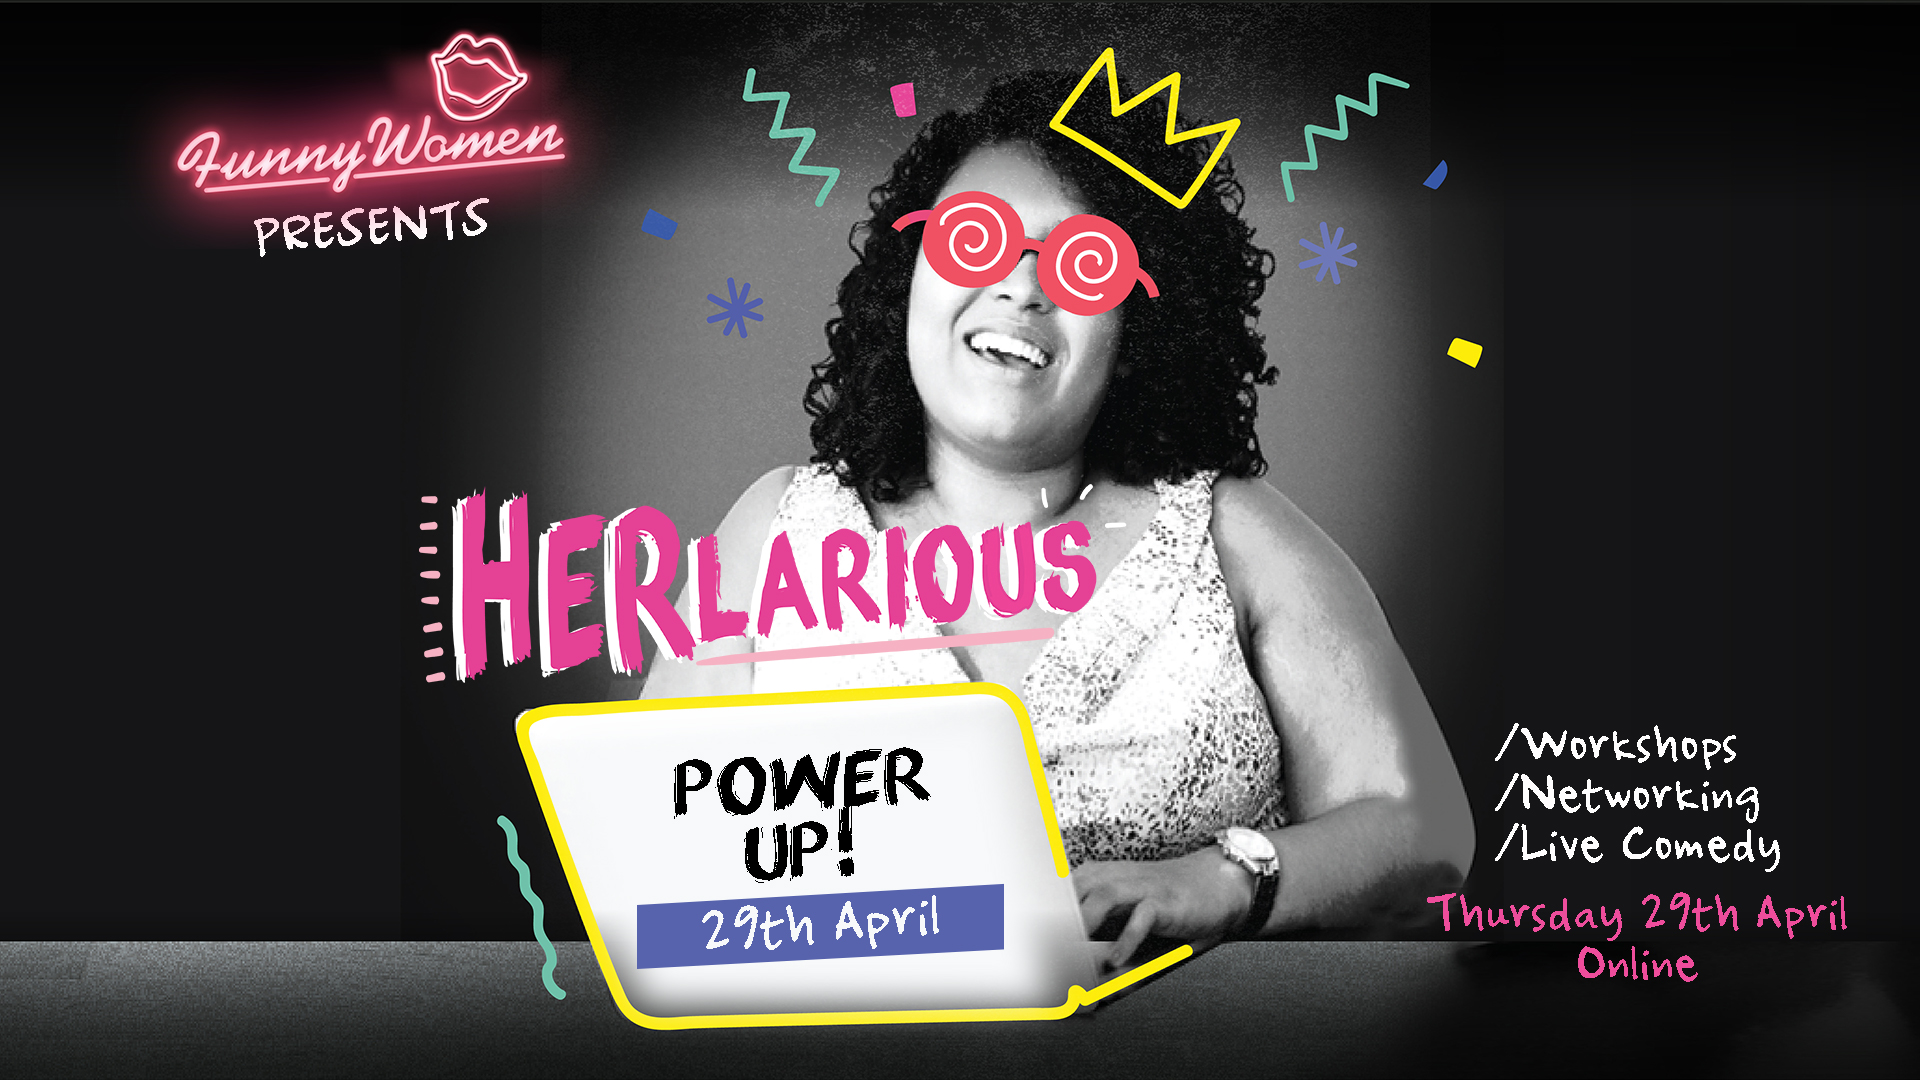 HERlarious PowerUp Funny Women event